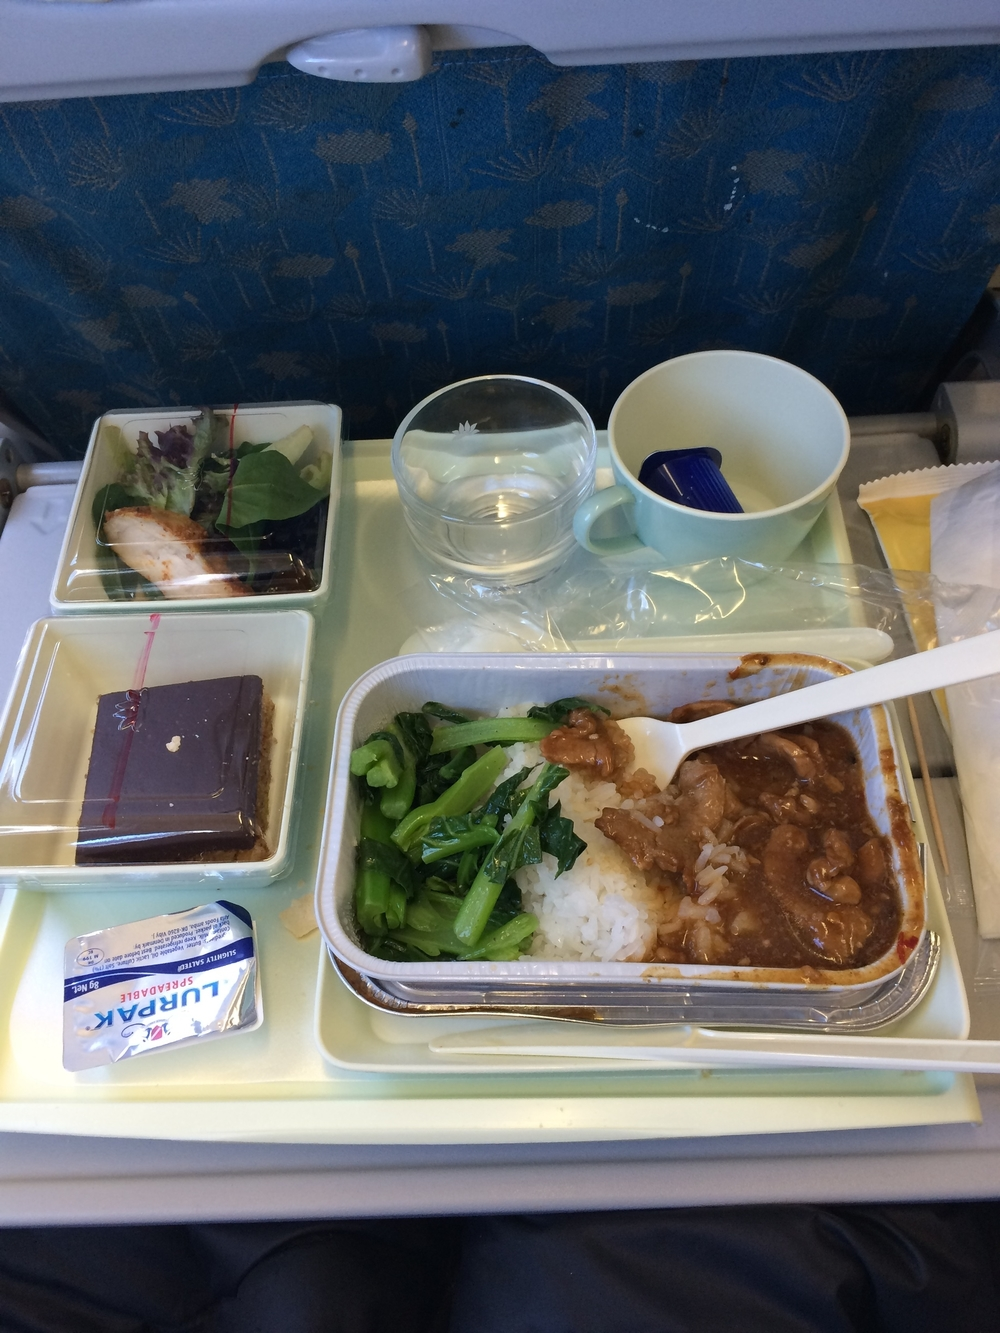 Lunch on Vietnam Airlines!